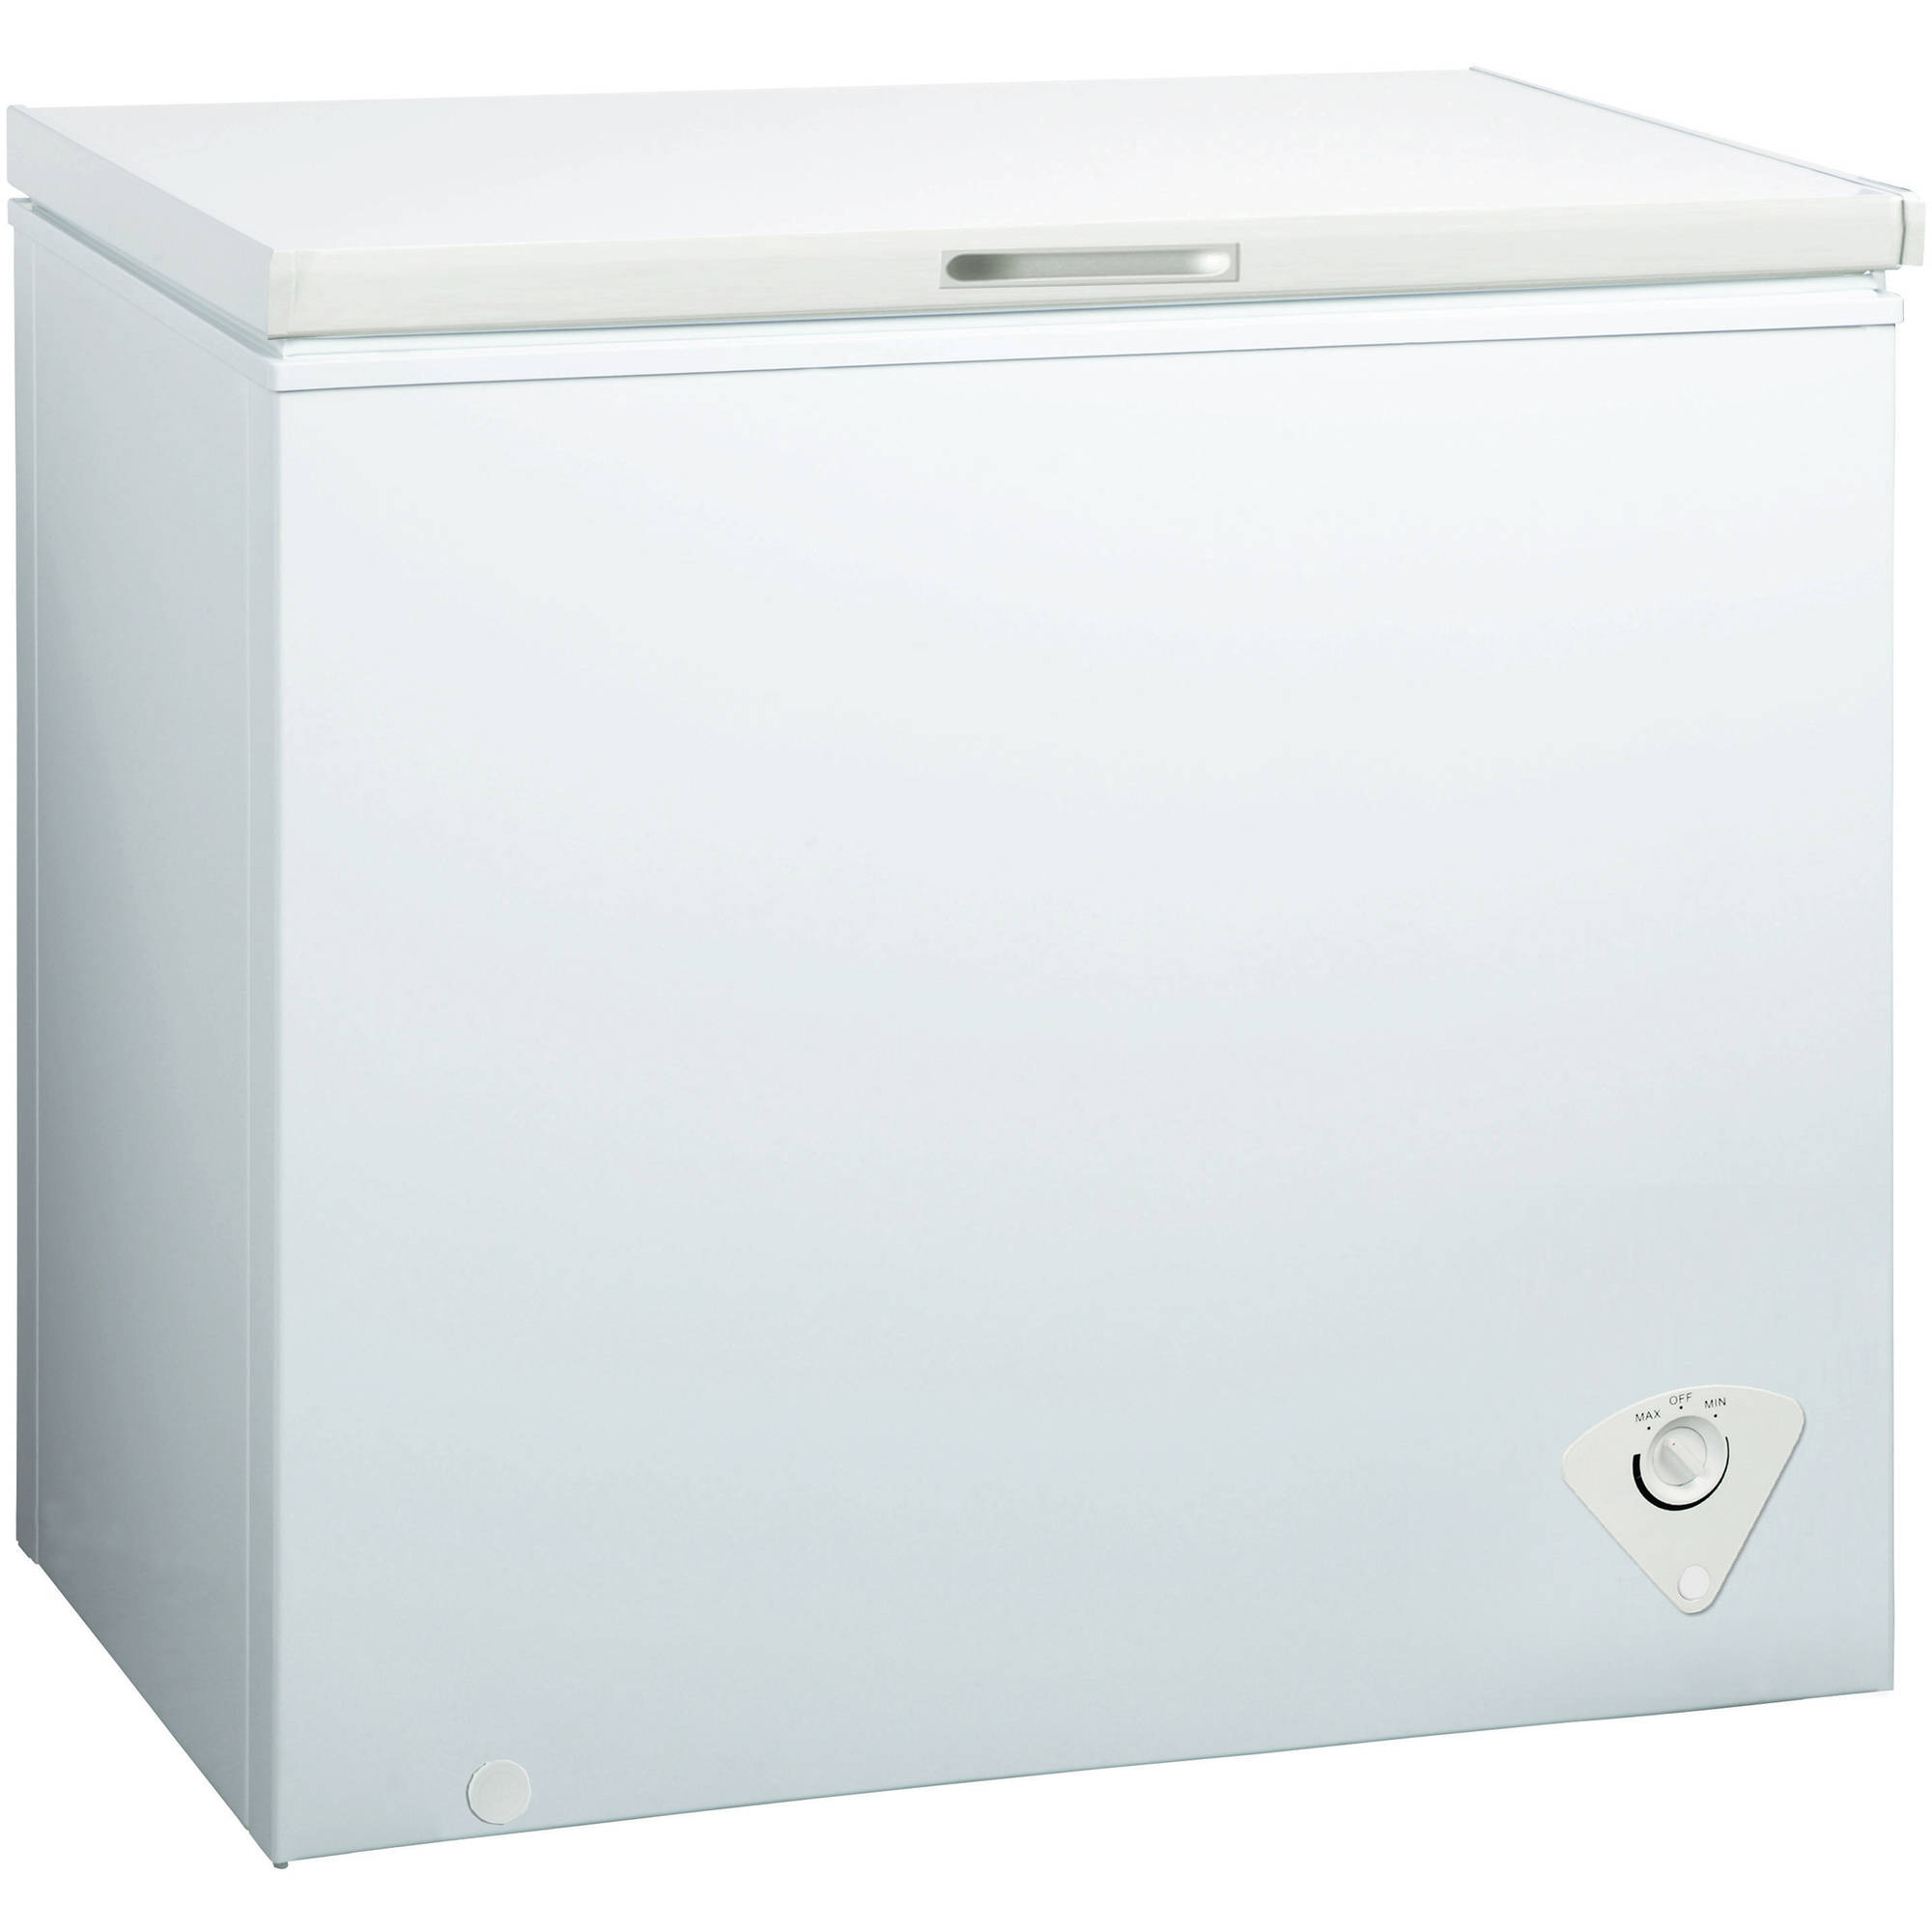 midea 102 cubic foot upright chest freezer white